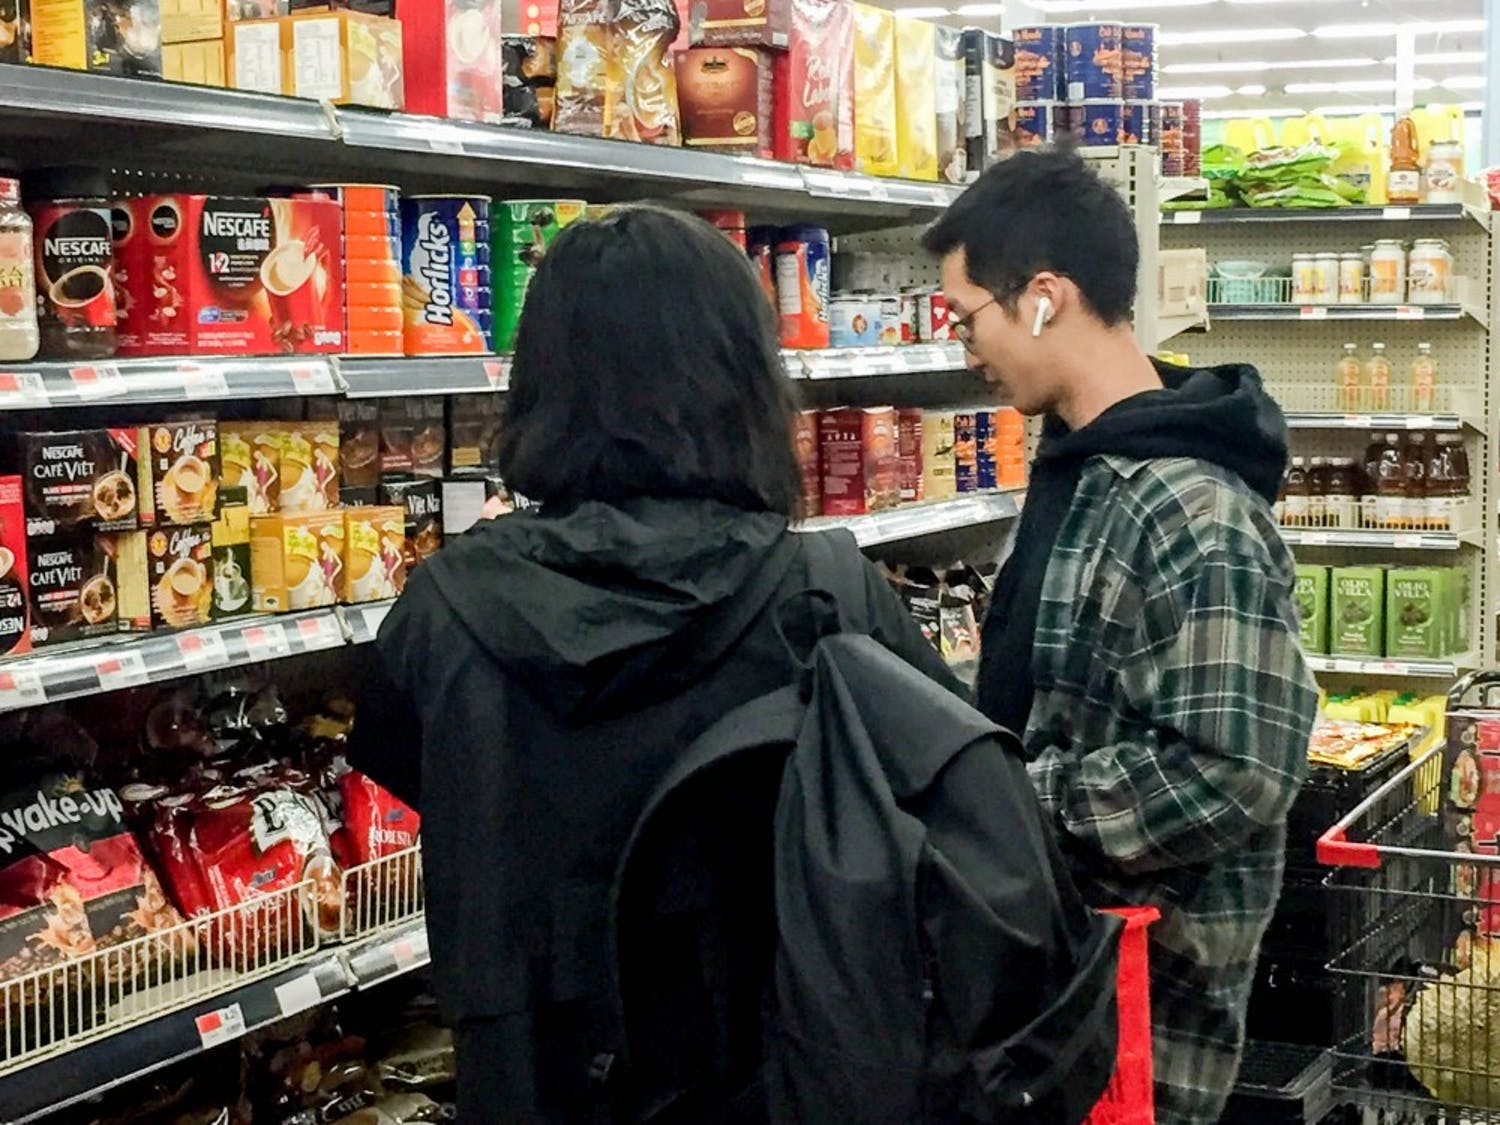 Two students shopping at Asia Food Market. The new market bus brings students to and from the market every Tuesday from 4 p.m. to 8 p.m., and has already transported hundreds of students to the market.